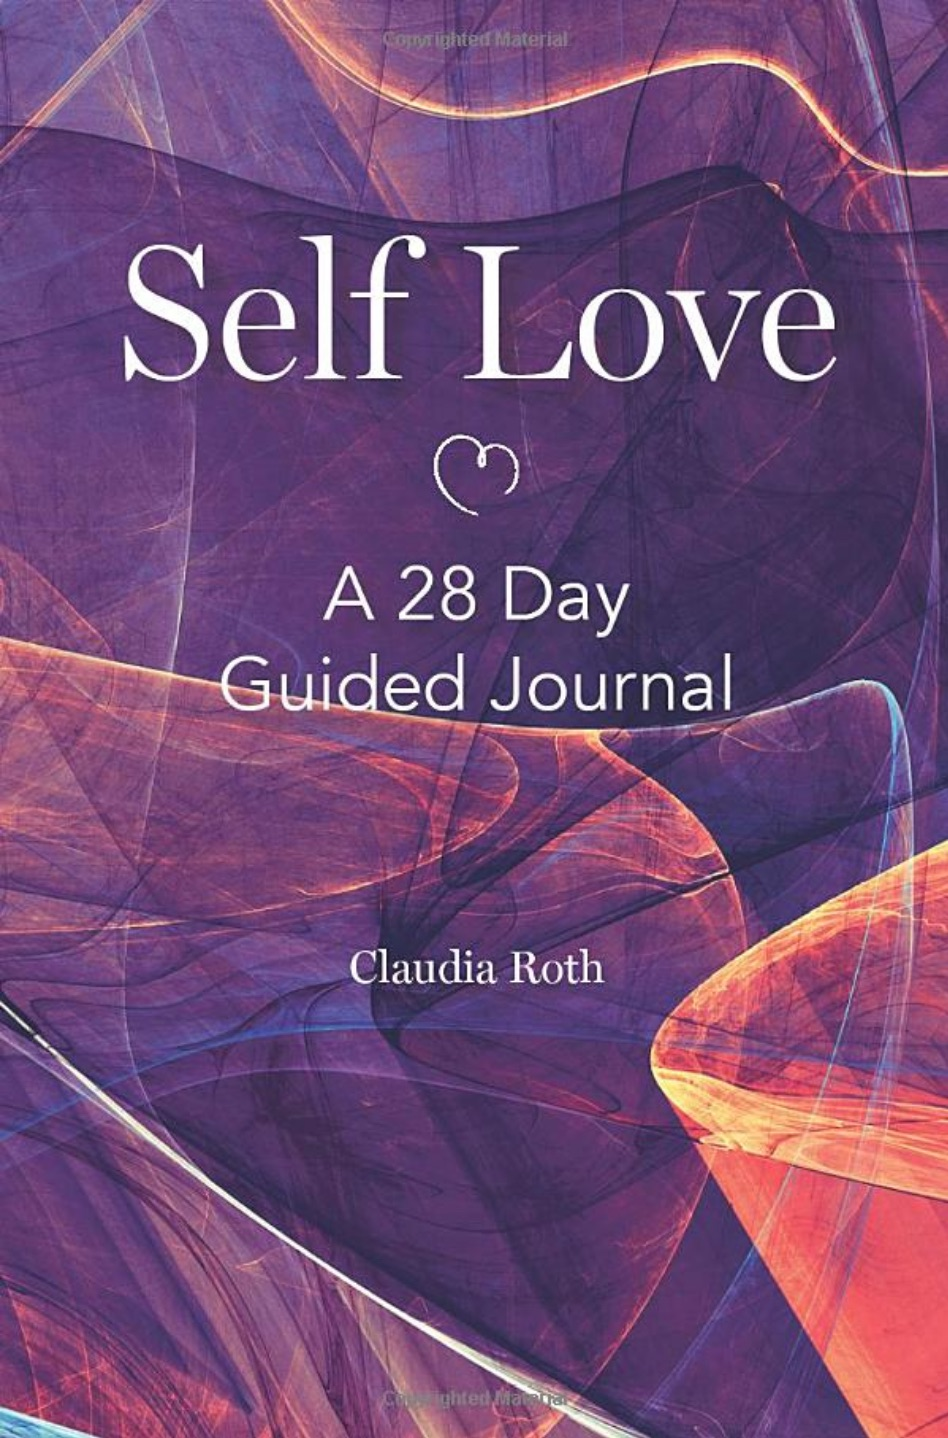 Self Love A 28 Day Guided Journal